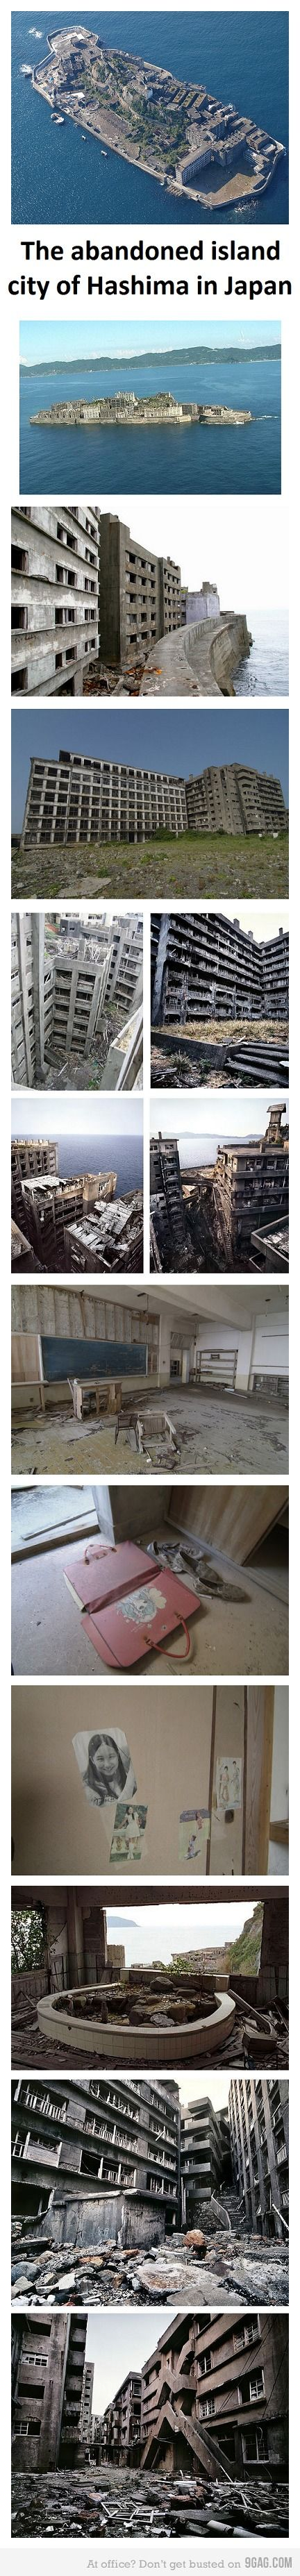 The abandoned island city of Hashima in Japan - it is an interesting read of the blog: http://briandeutsch.blogspot.com/2009/12/japan-pays-korean-comfort-women-99-yen.html